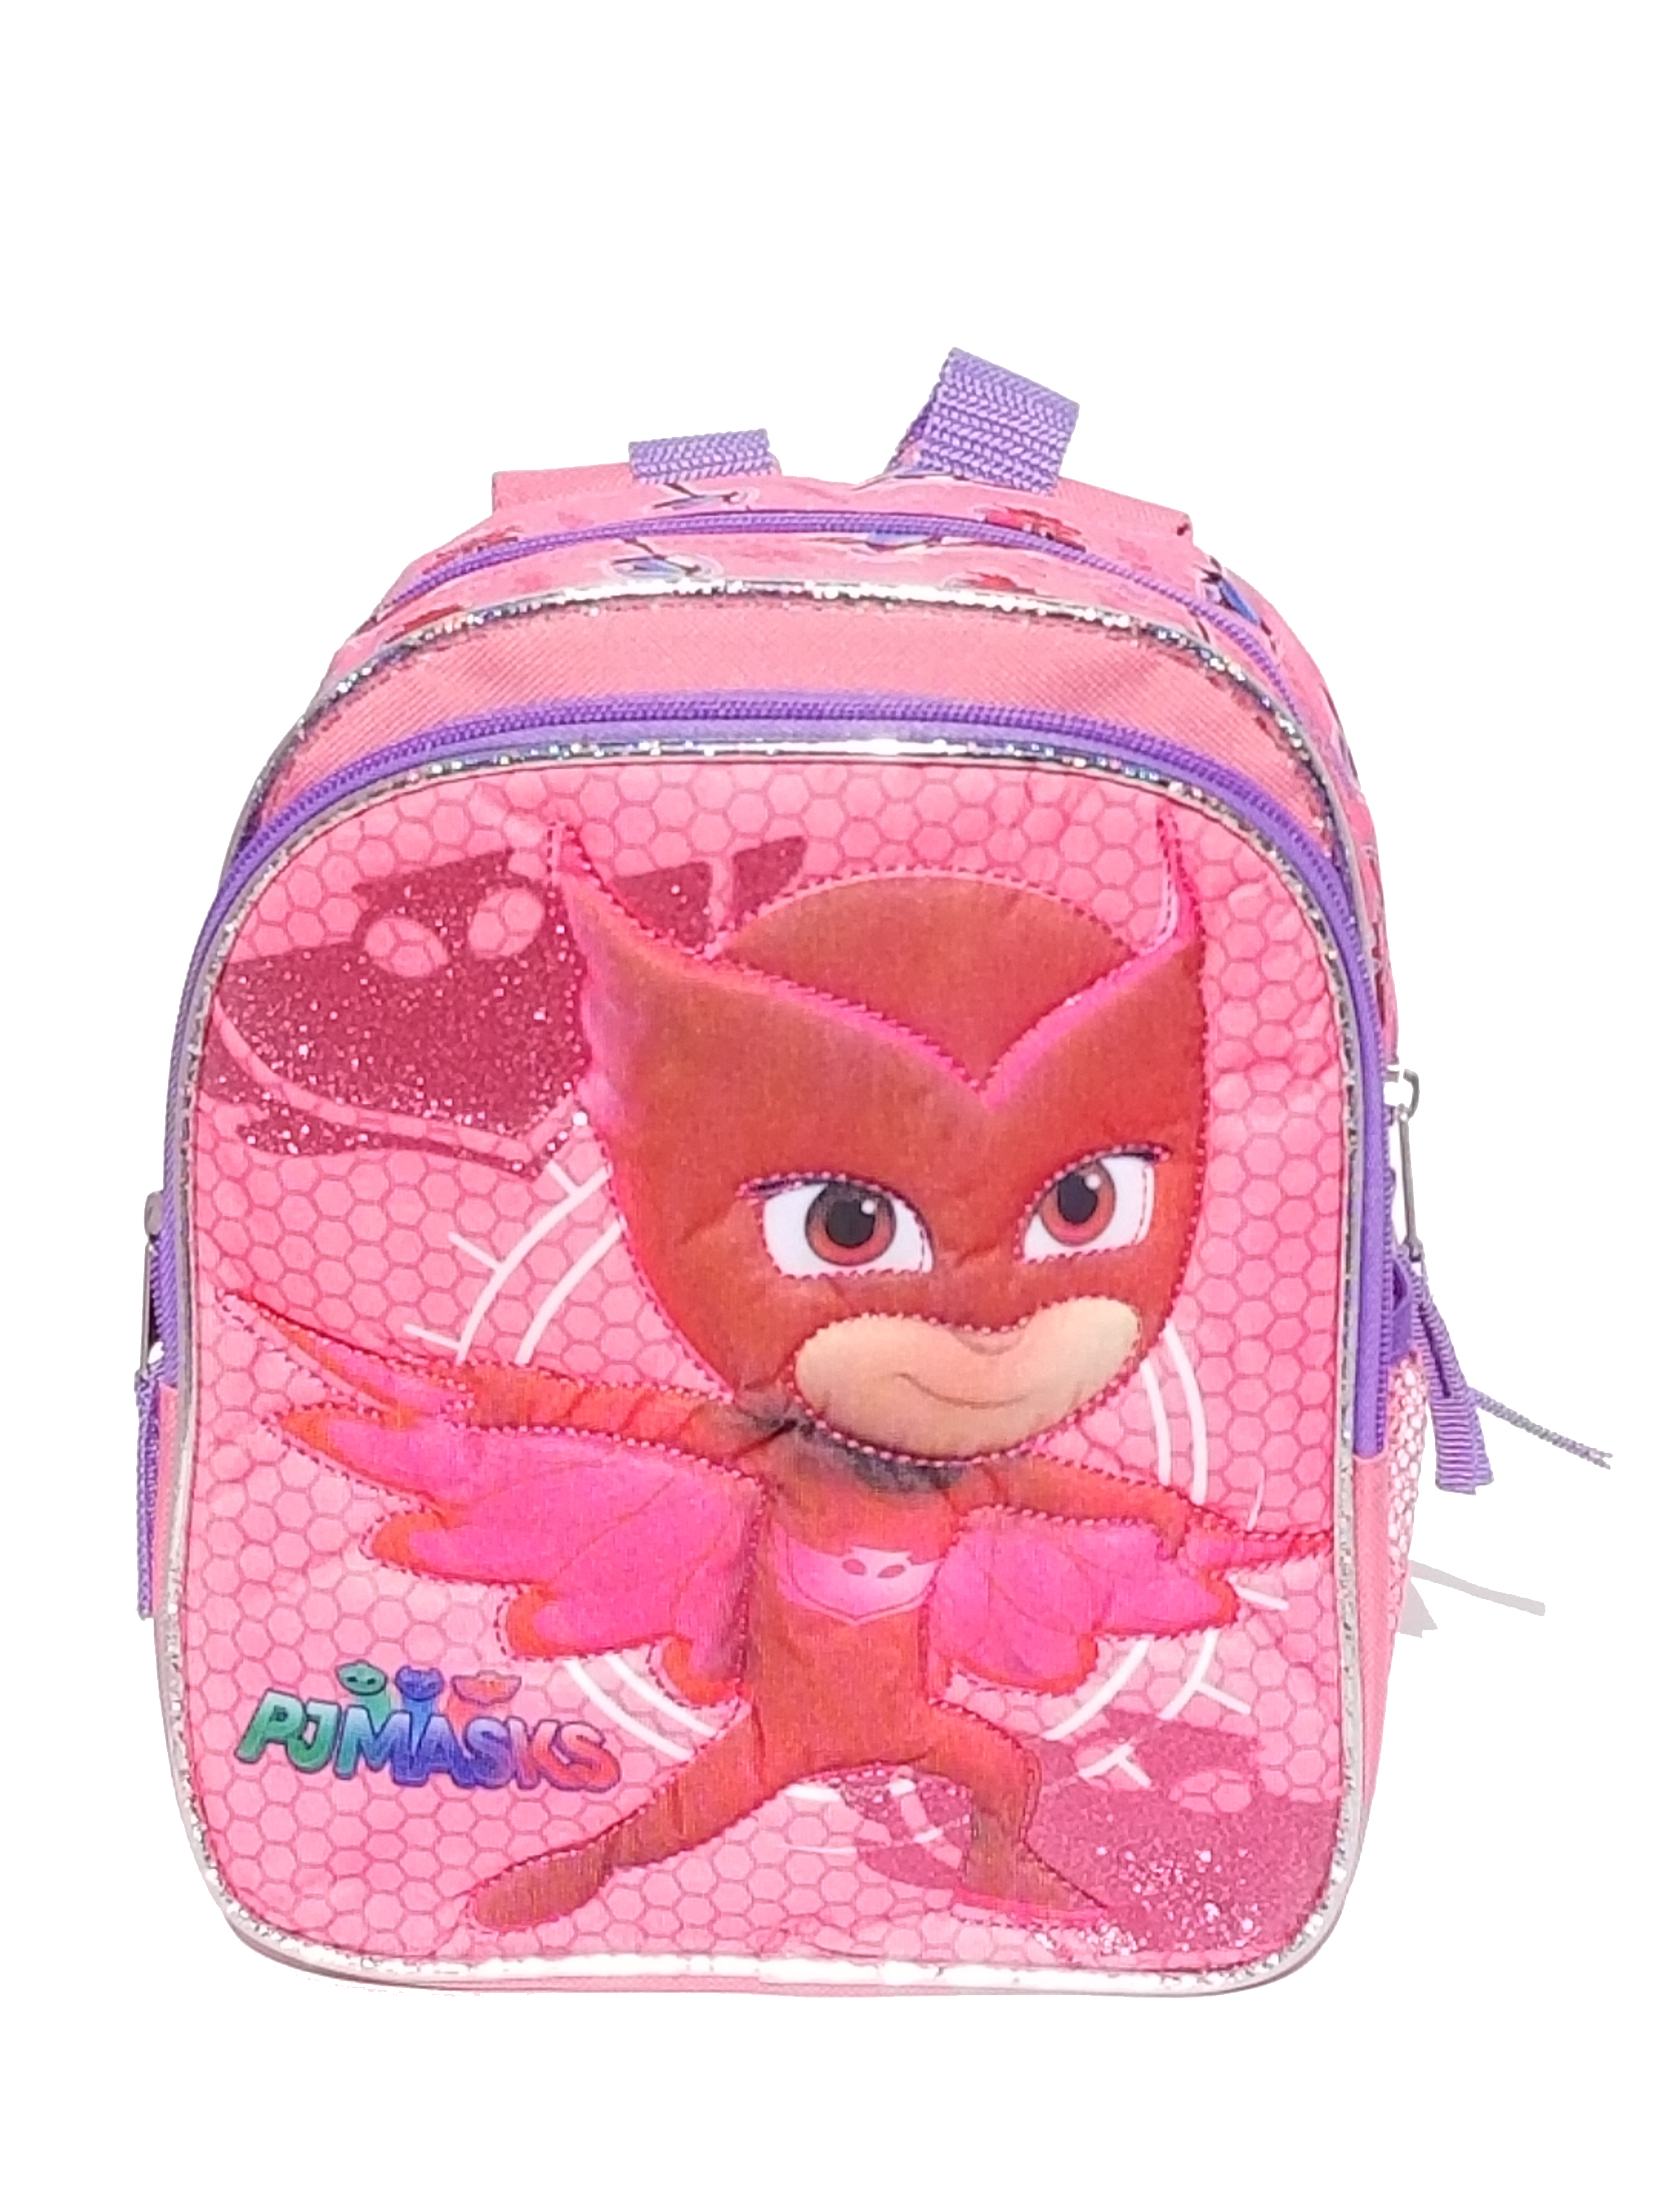 PJ Mask Mini Backpack 10""